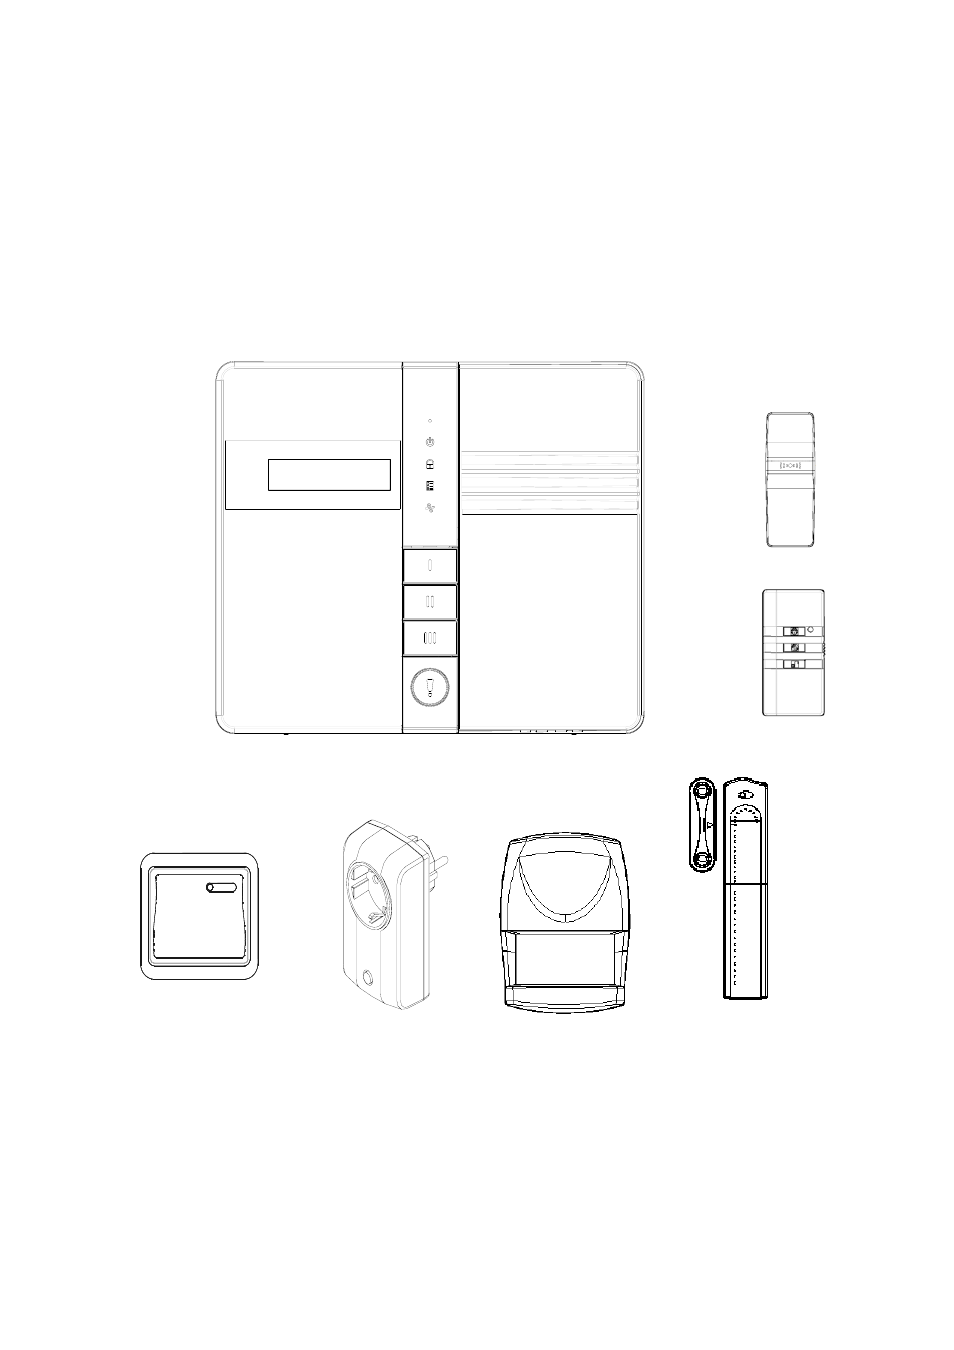 ELRO HIS20S Security & home automation system EXPANDED